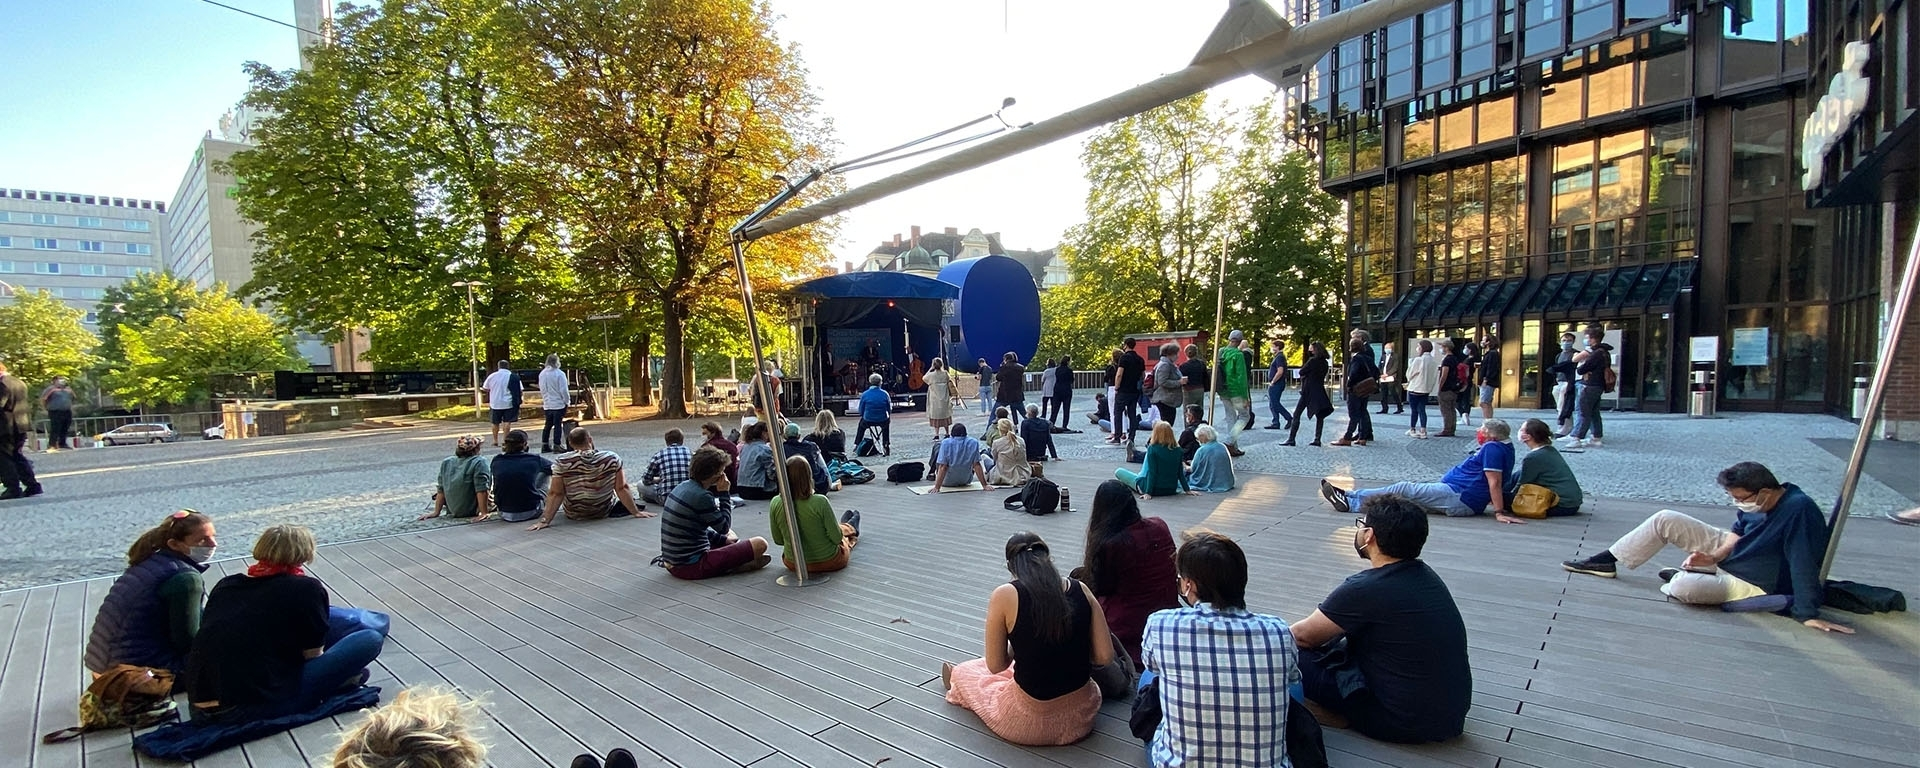 Summer in the City: Free Open-air Programme in Front of the Gasteig